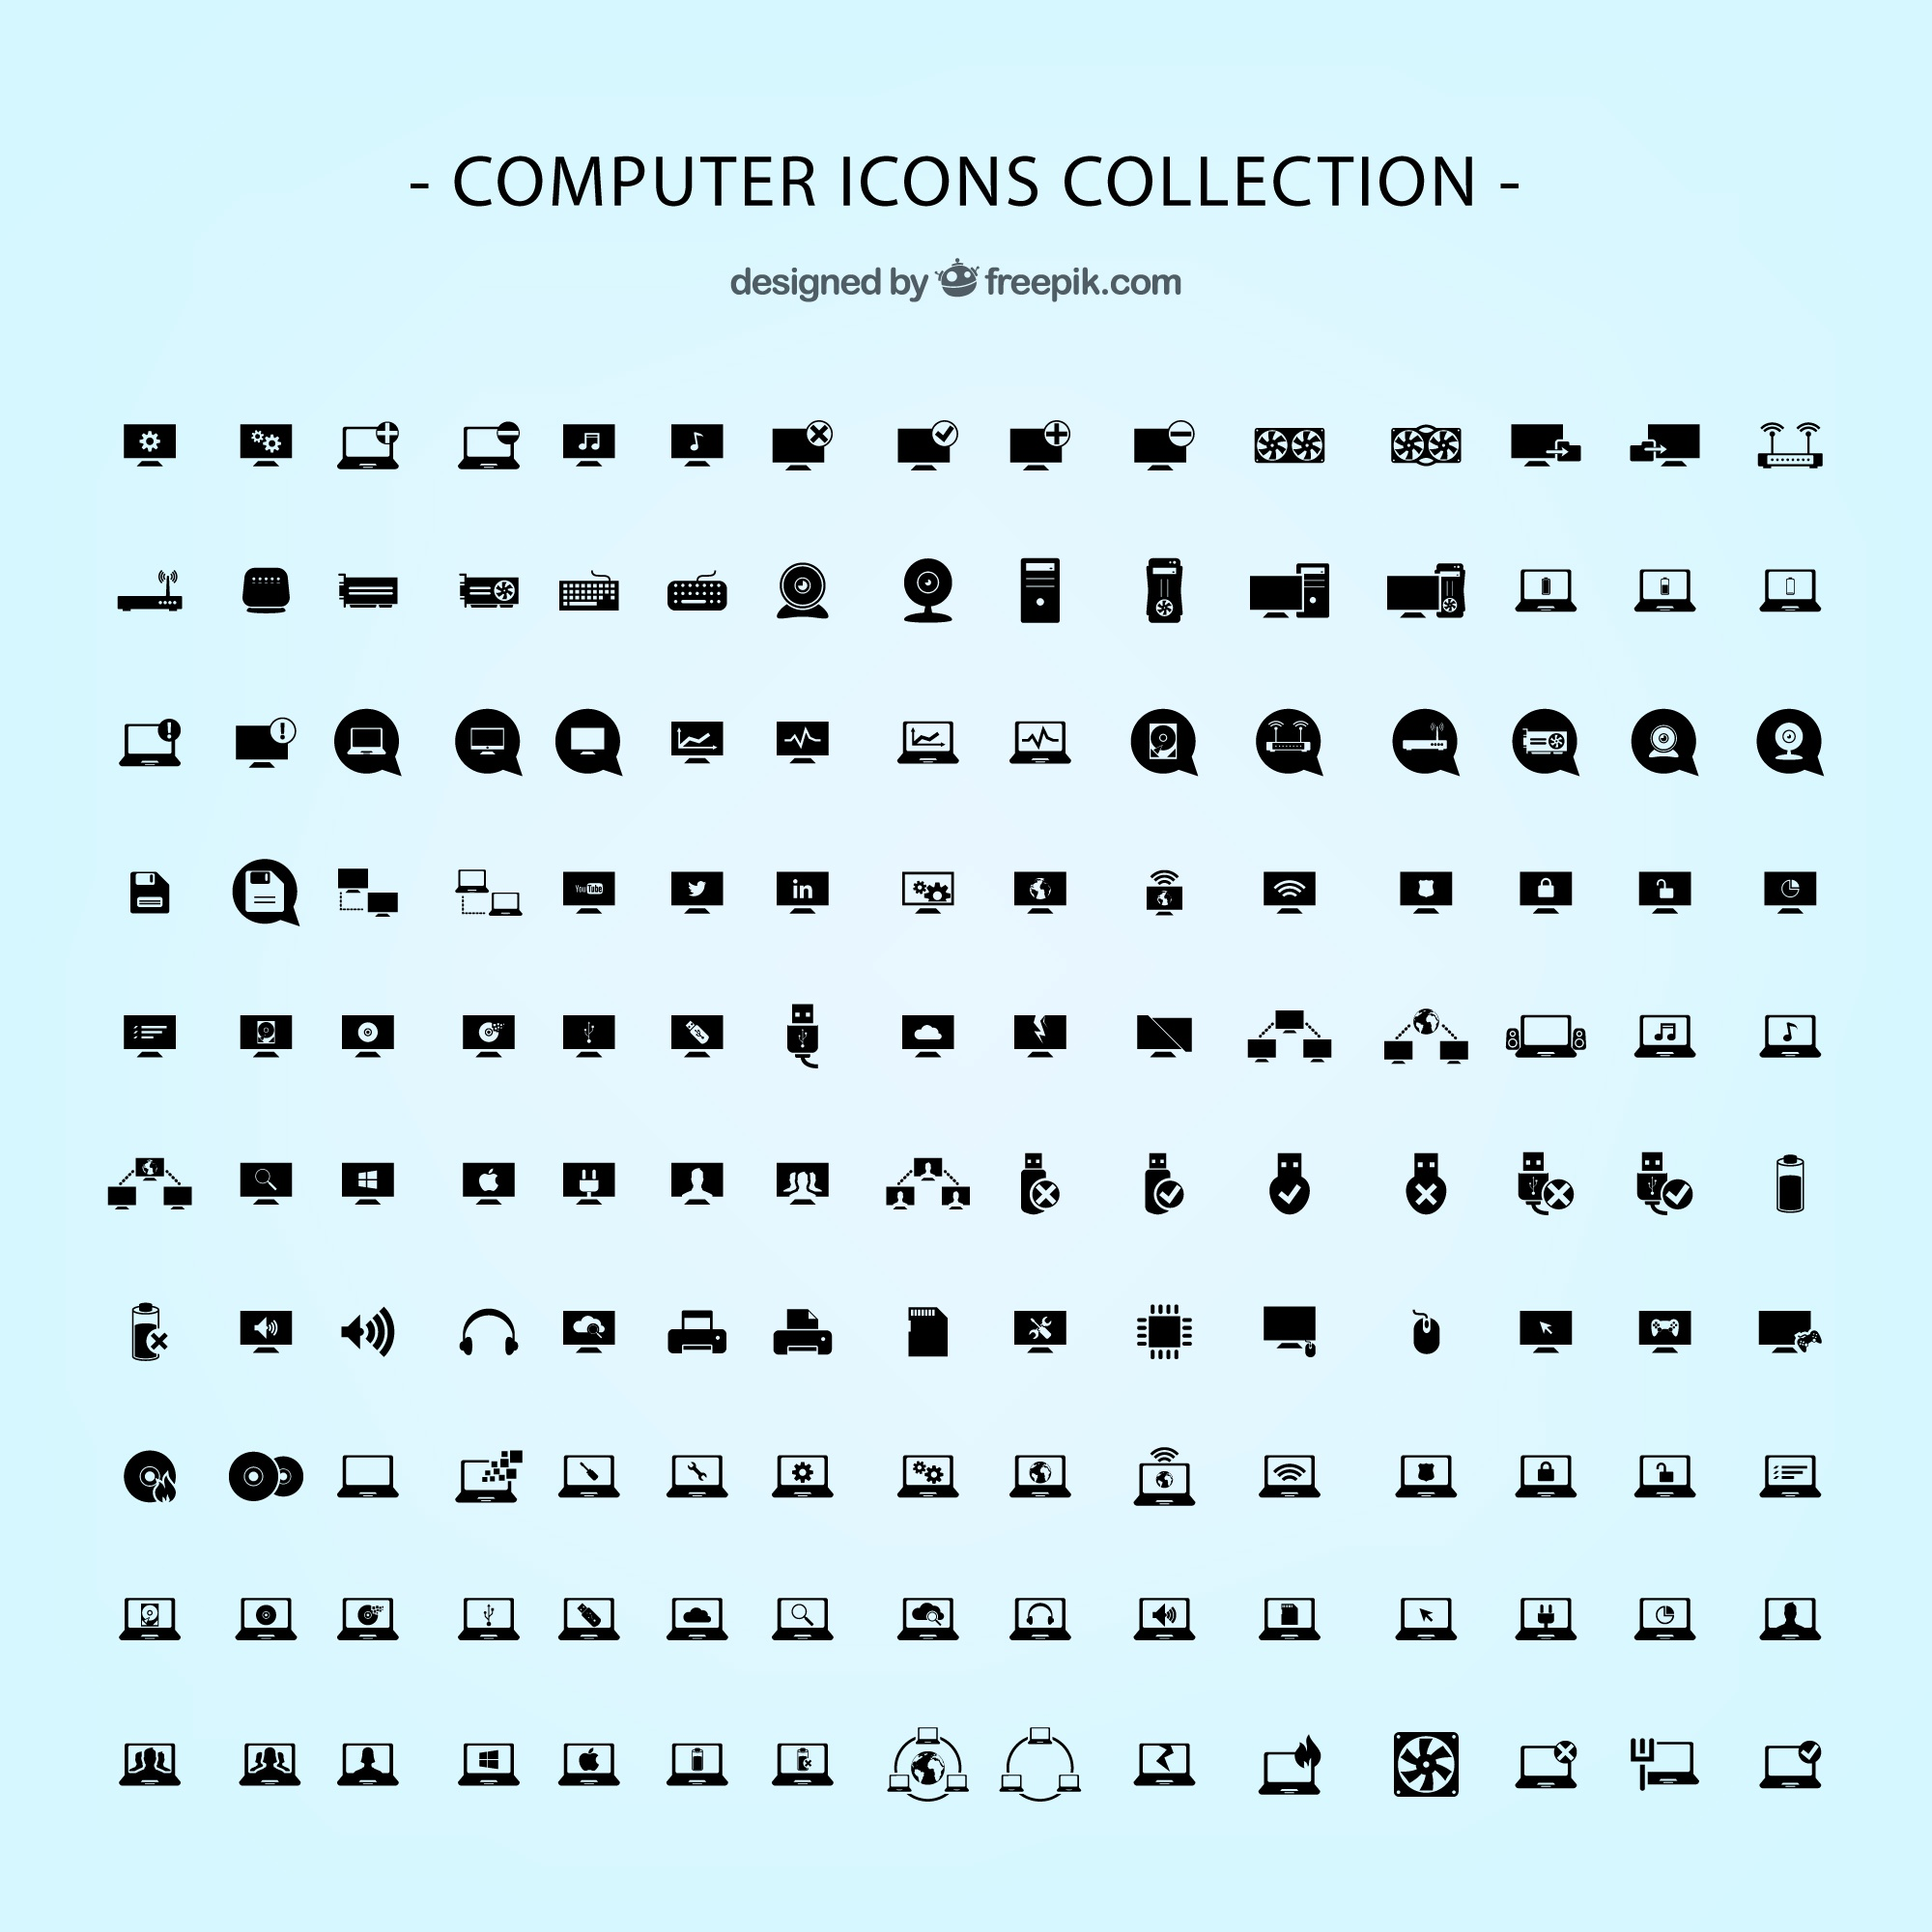 Computer icons vector pack